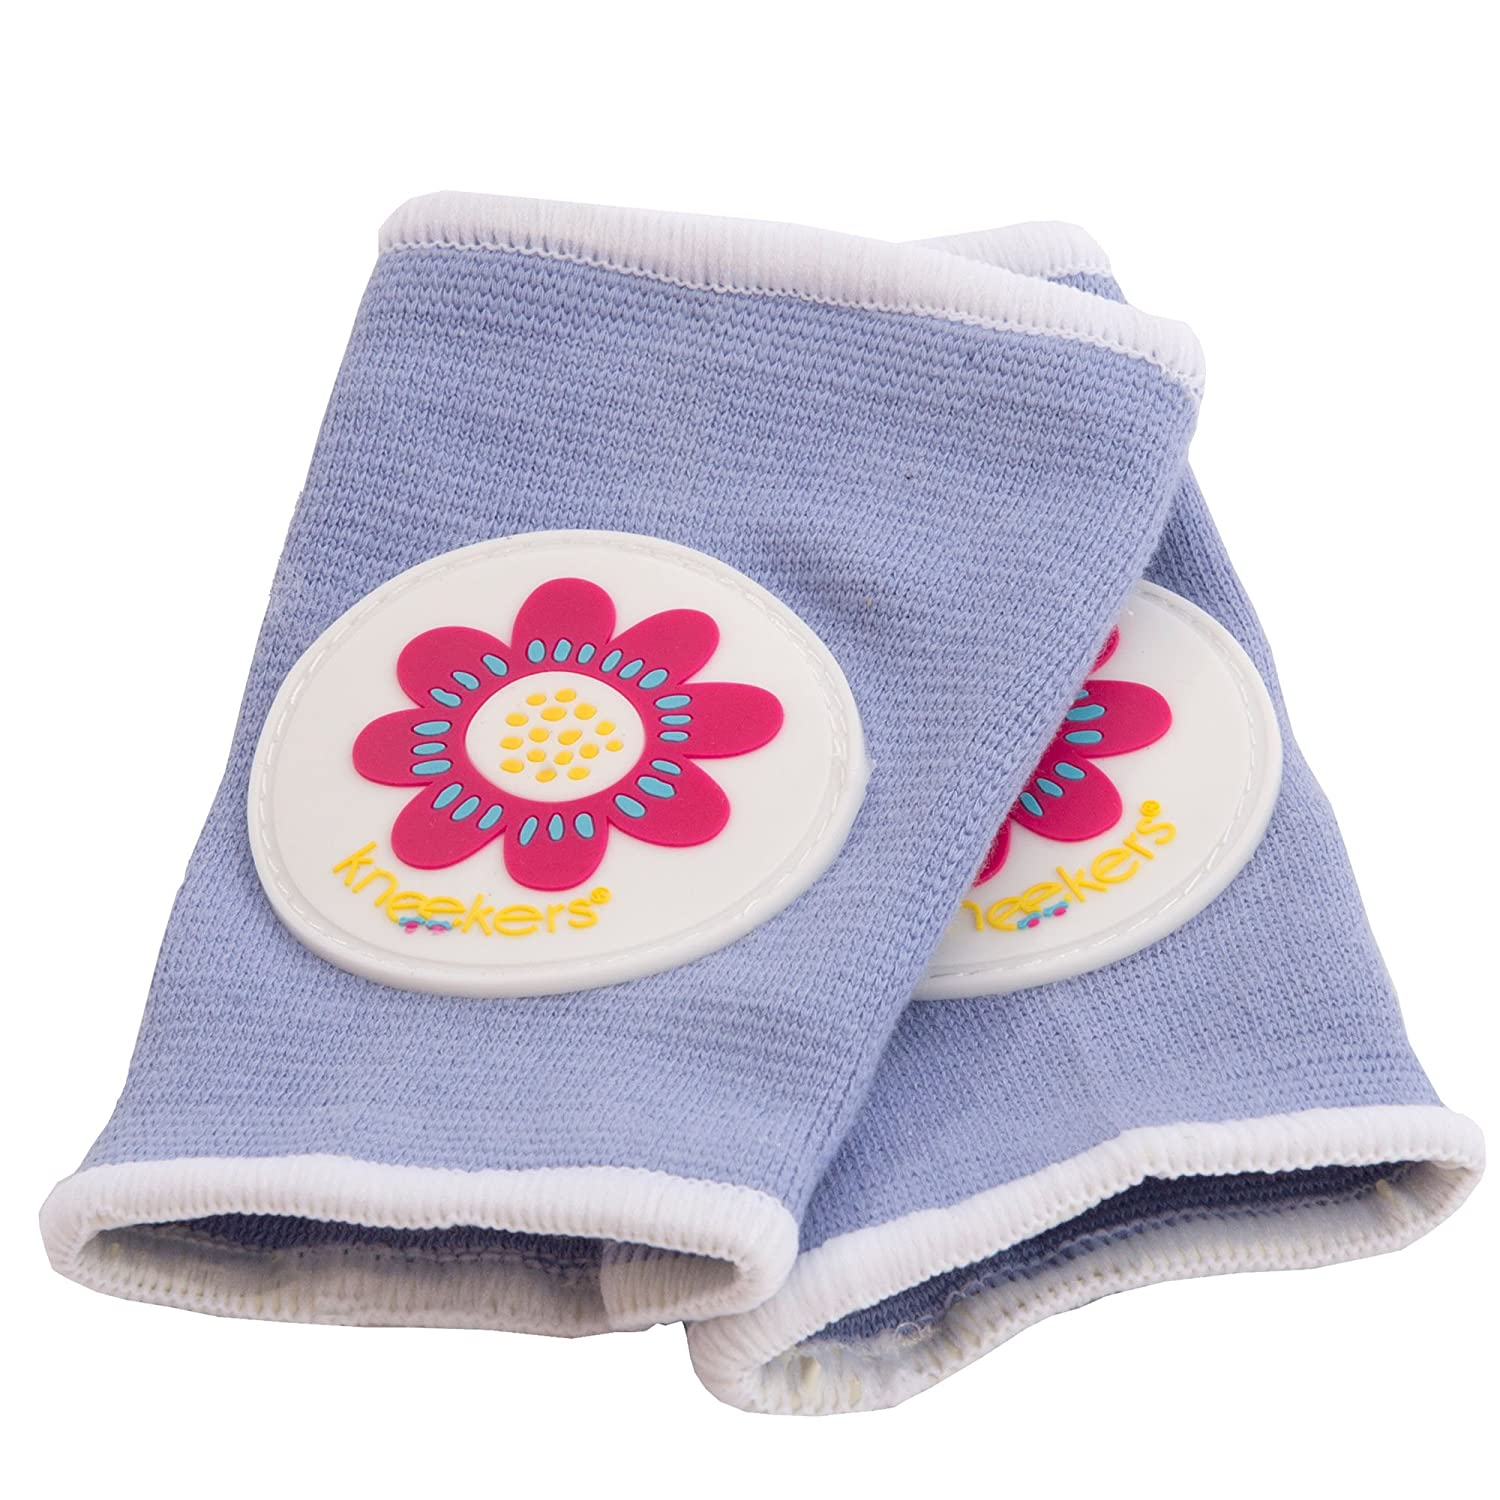 Top 9 Best Baby Knee Pads for Crawling Reviews in 2021 12